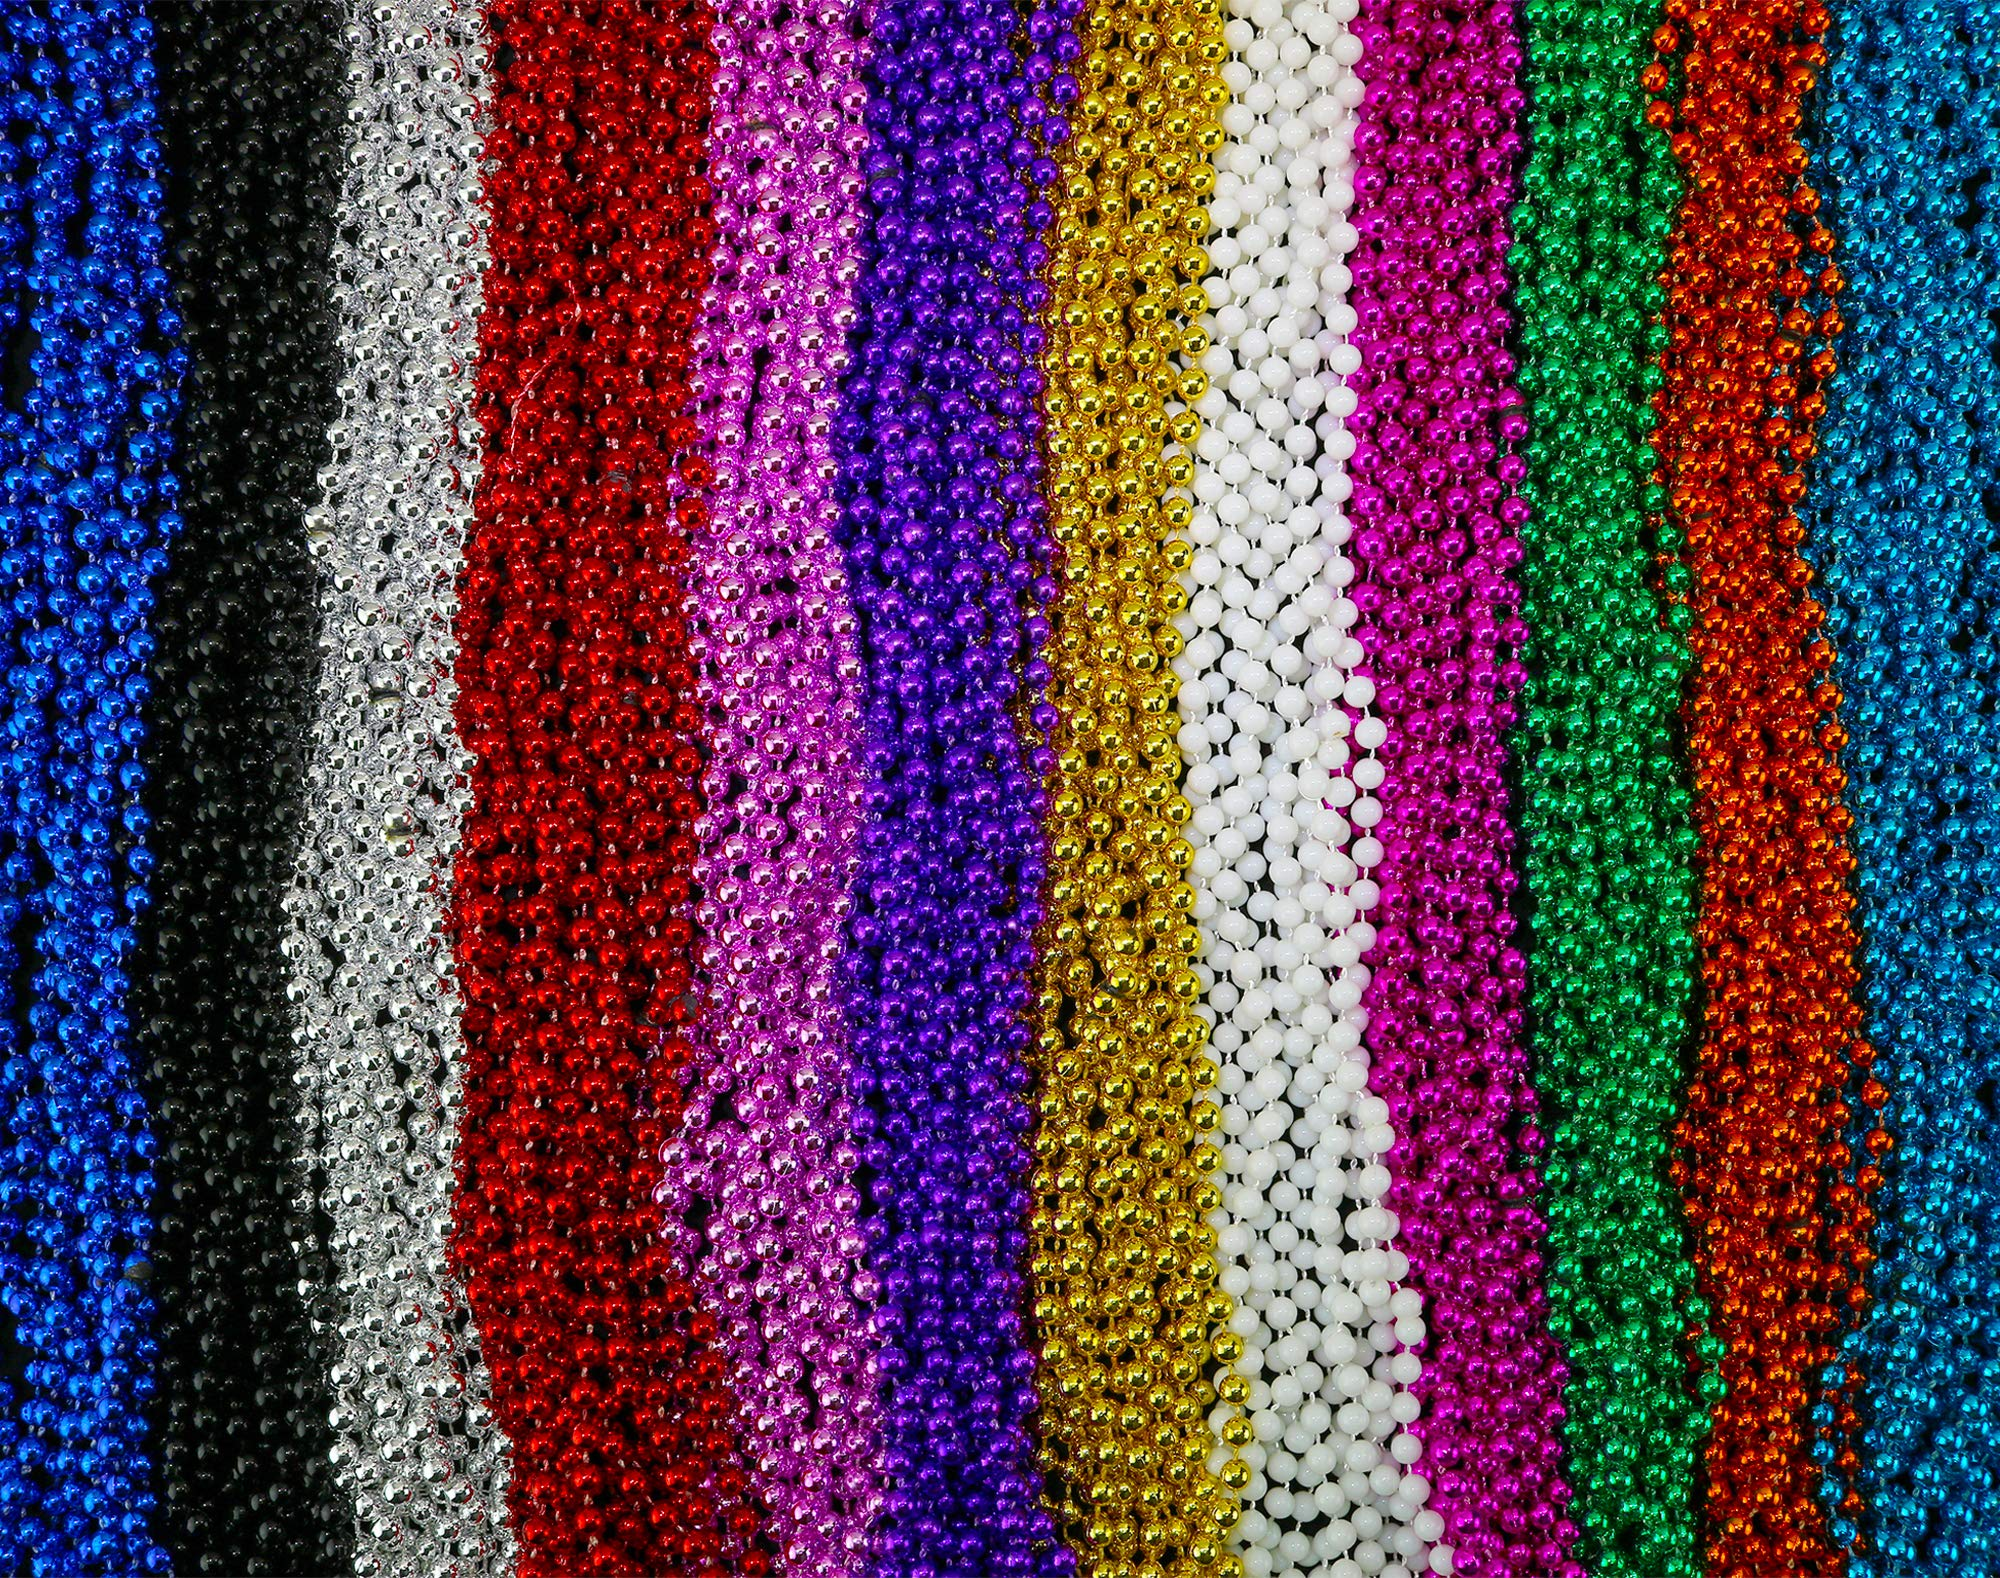 Skeleteen Mardi Gras Beads Necklaces - Assorted Colors Gasparilla Beaded Costume Necklace for Party - 144 Necklaces by Skeleteen